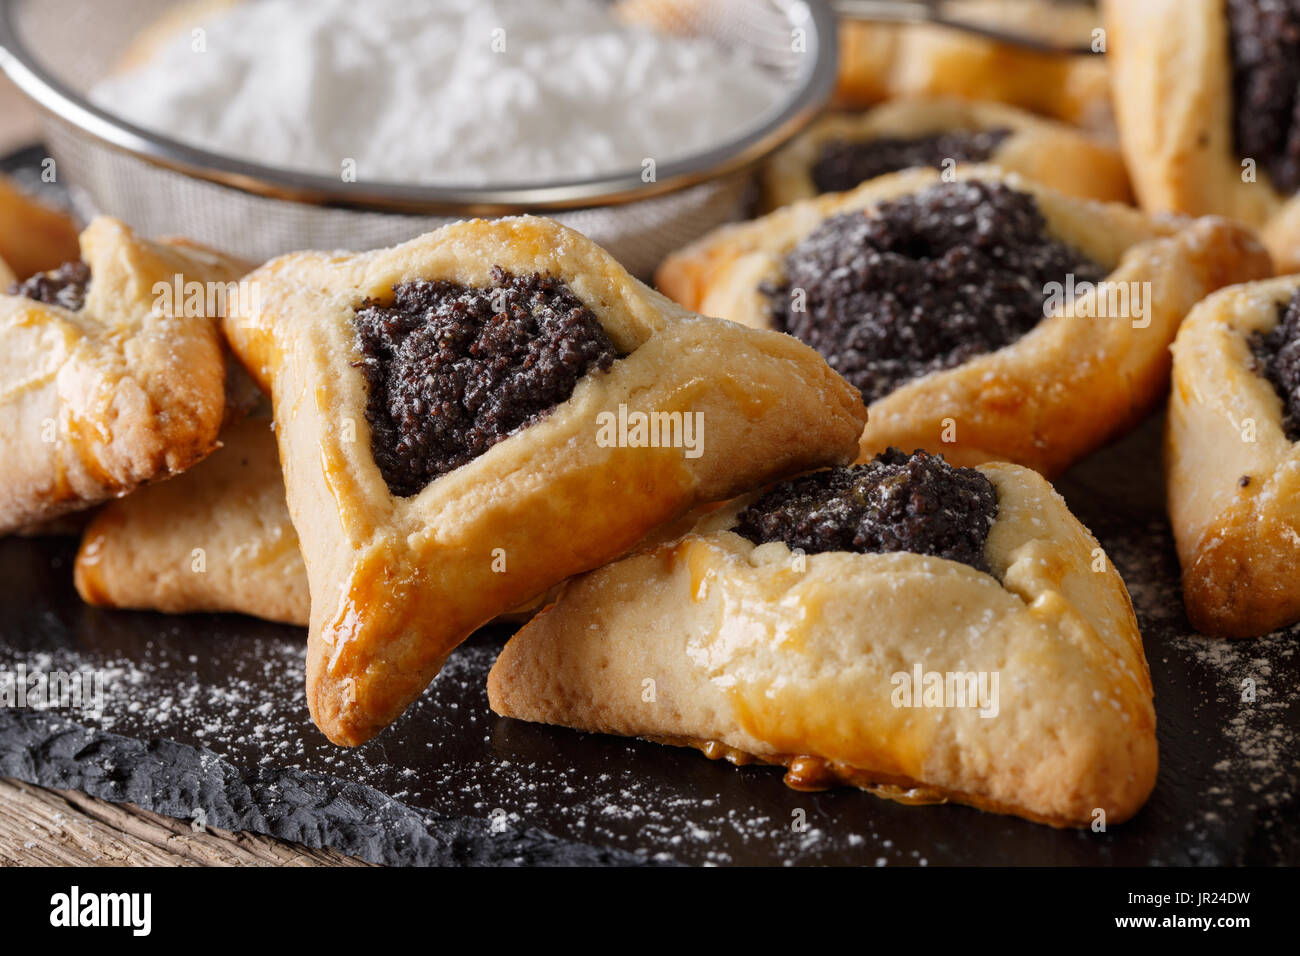 Hamantaschen cookies or hamans ears Purim celebration closeup on the table. Horizontal - Stock Image